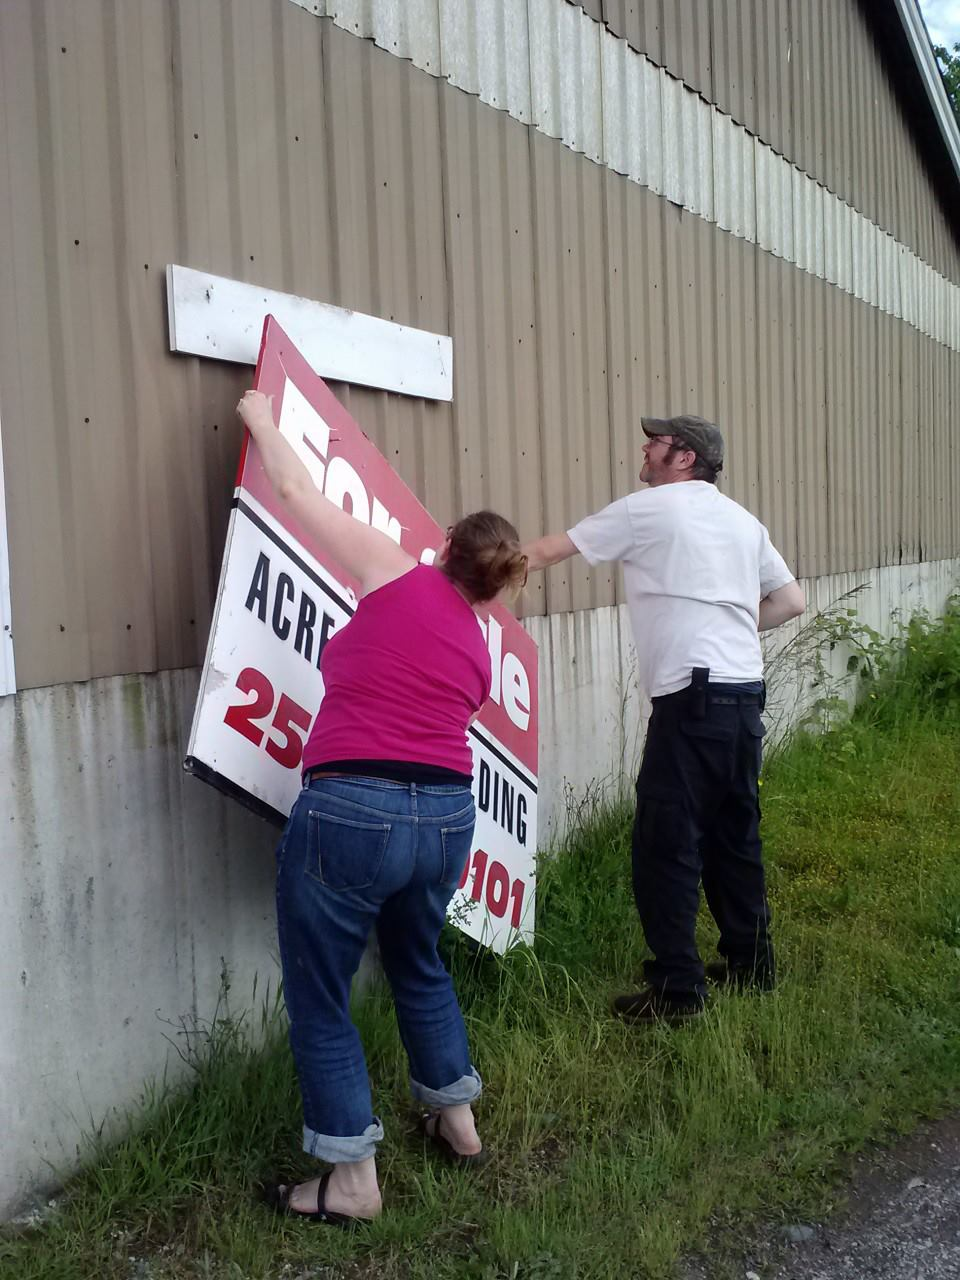 Taking down the for sale sign